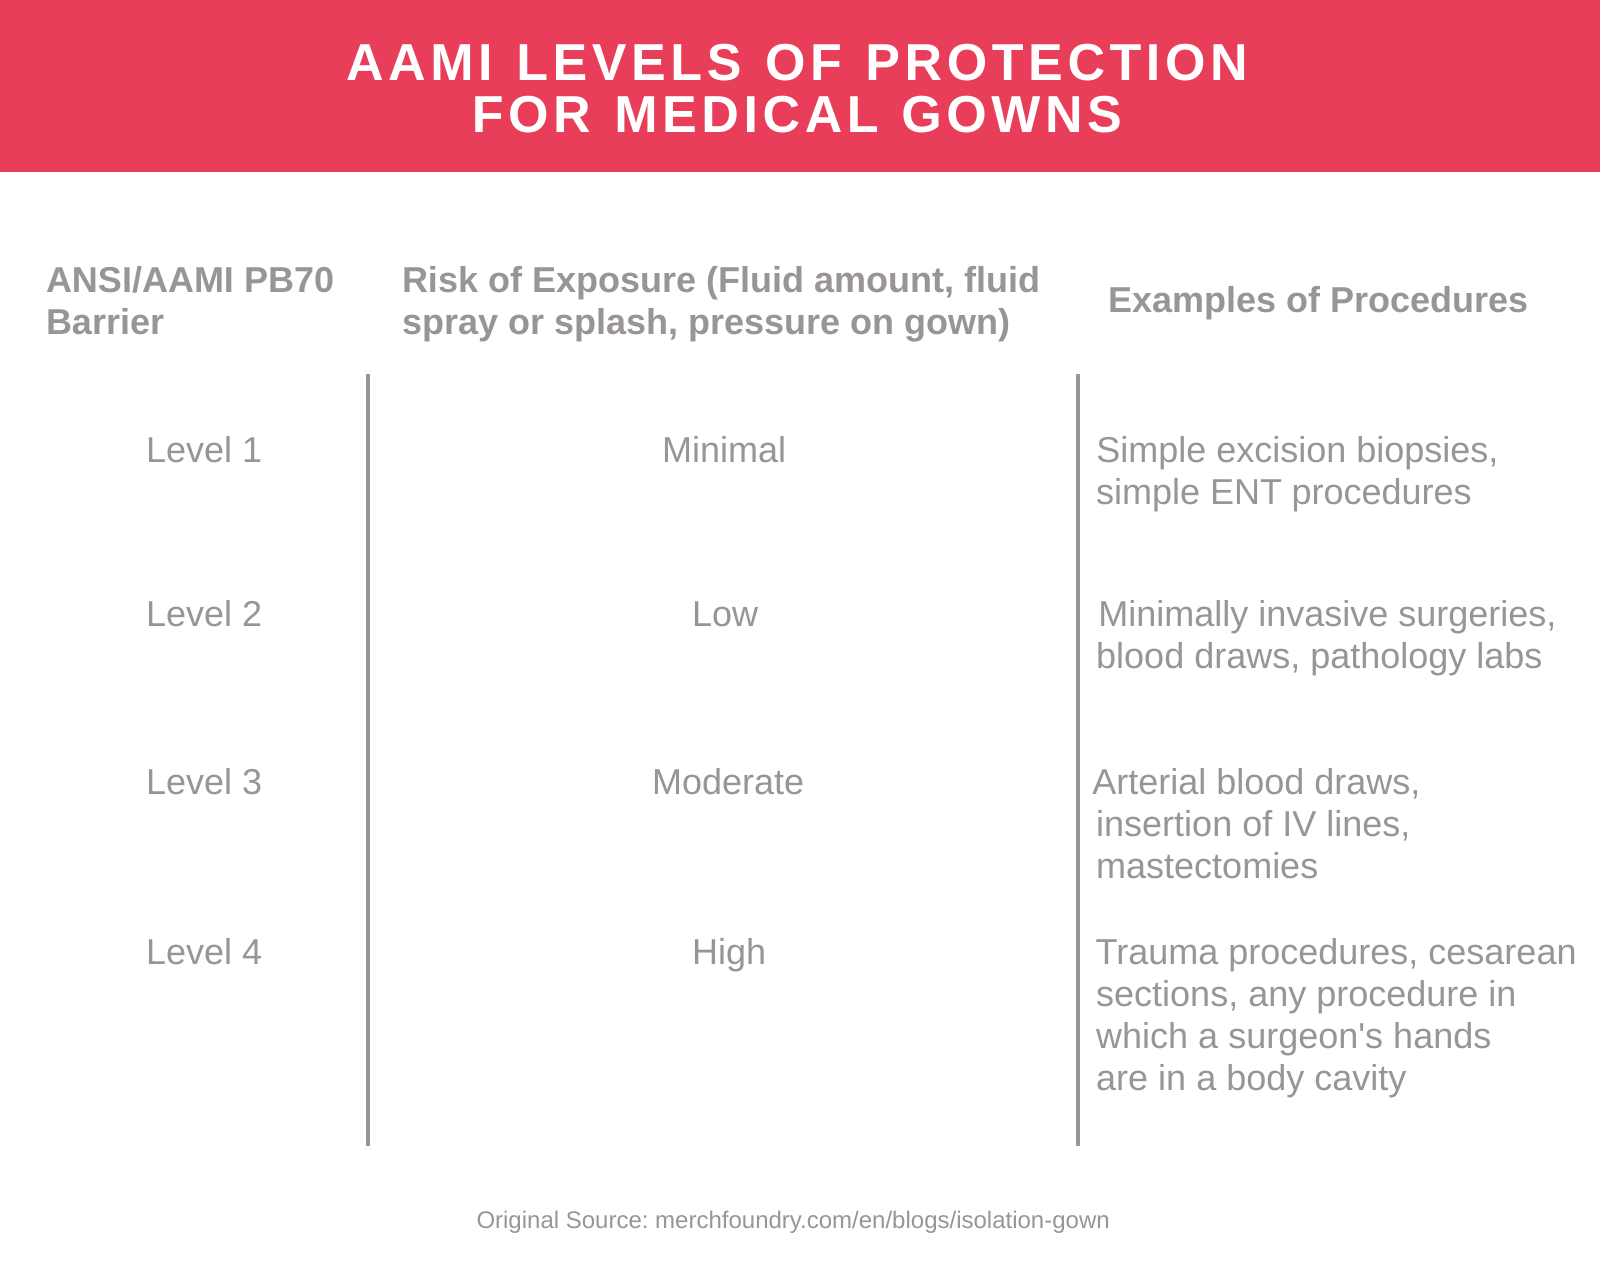 AAMI Levels of Protection